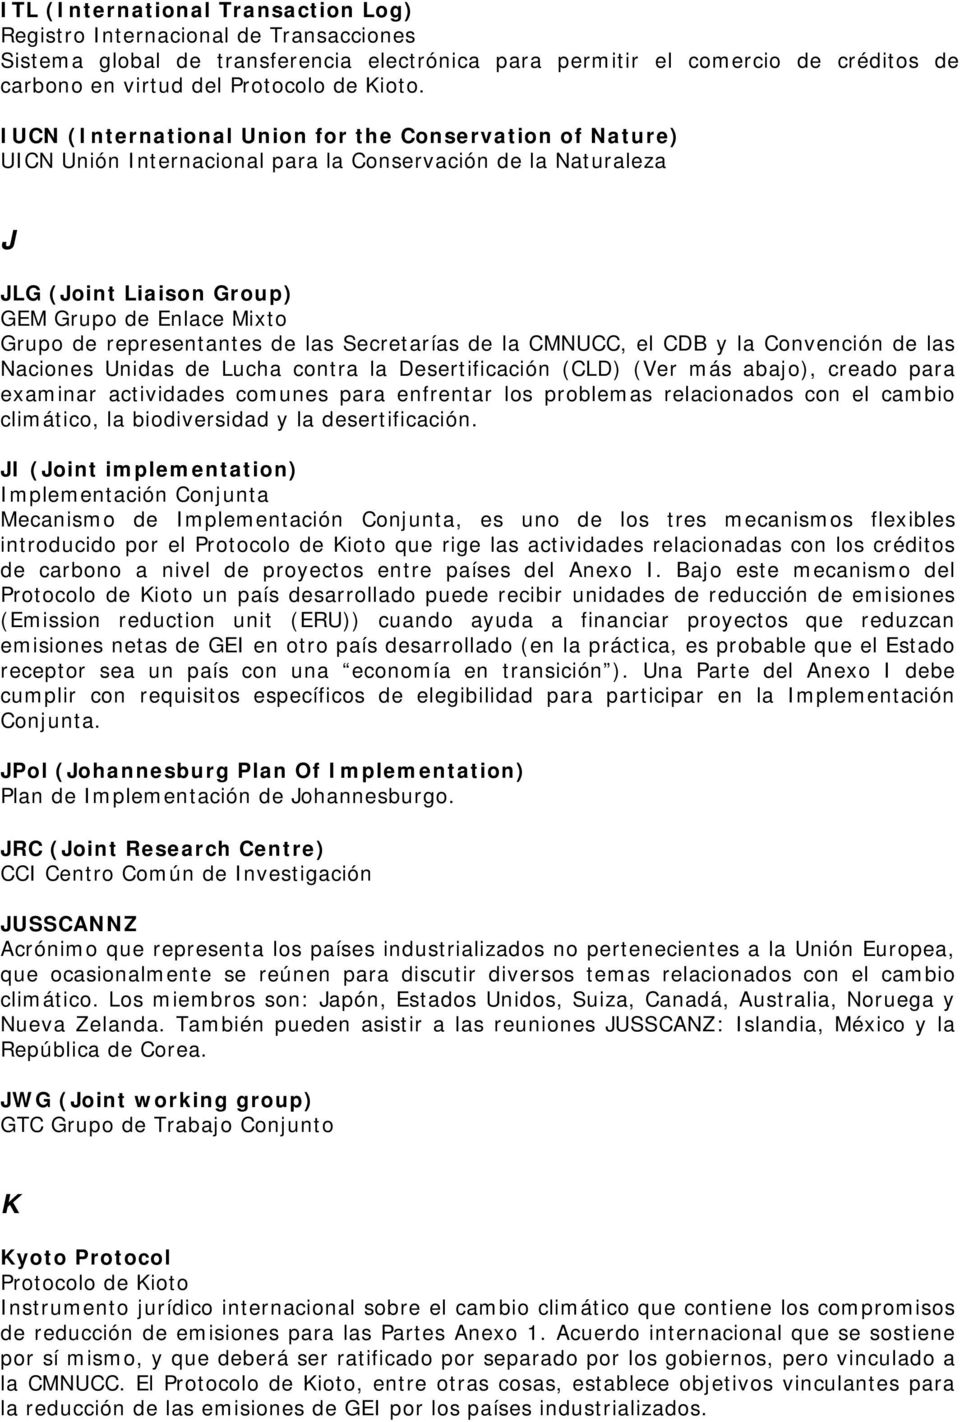 IUCN (International Union for the Conservation of Nature) UICN Unión Internacional para la Conservación de la Naturaleza J JLG (Joint Liaison Group) GEM Grupo de Enlace Mixto Grupo de representantes